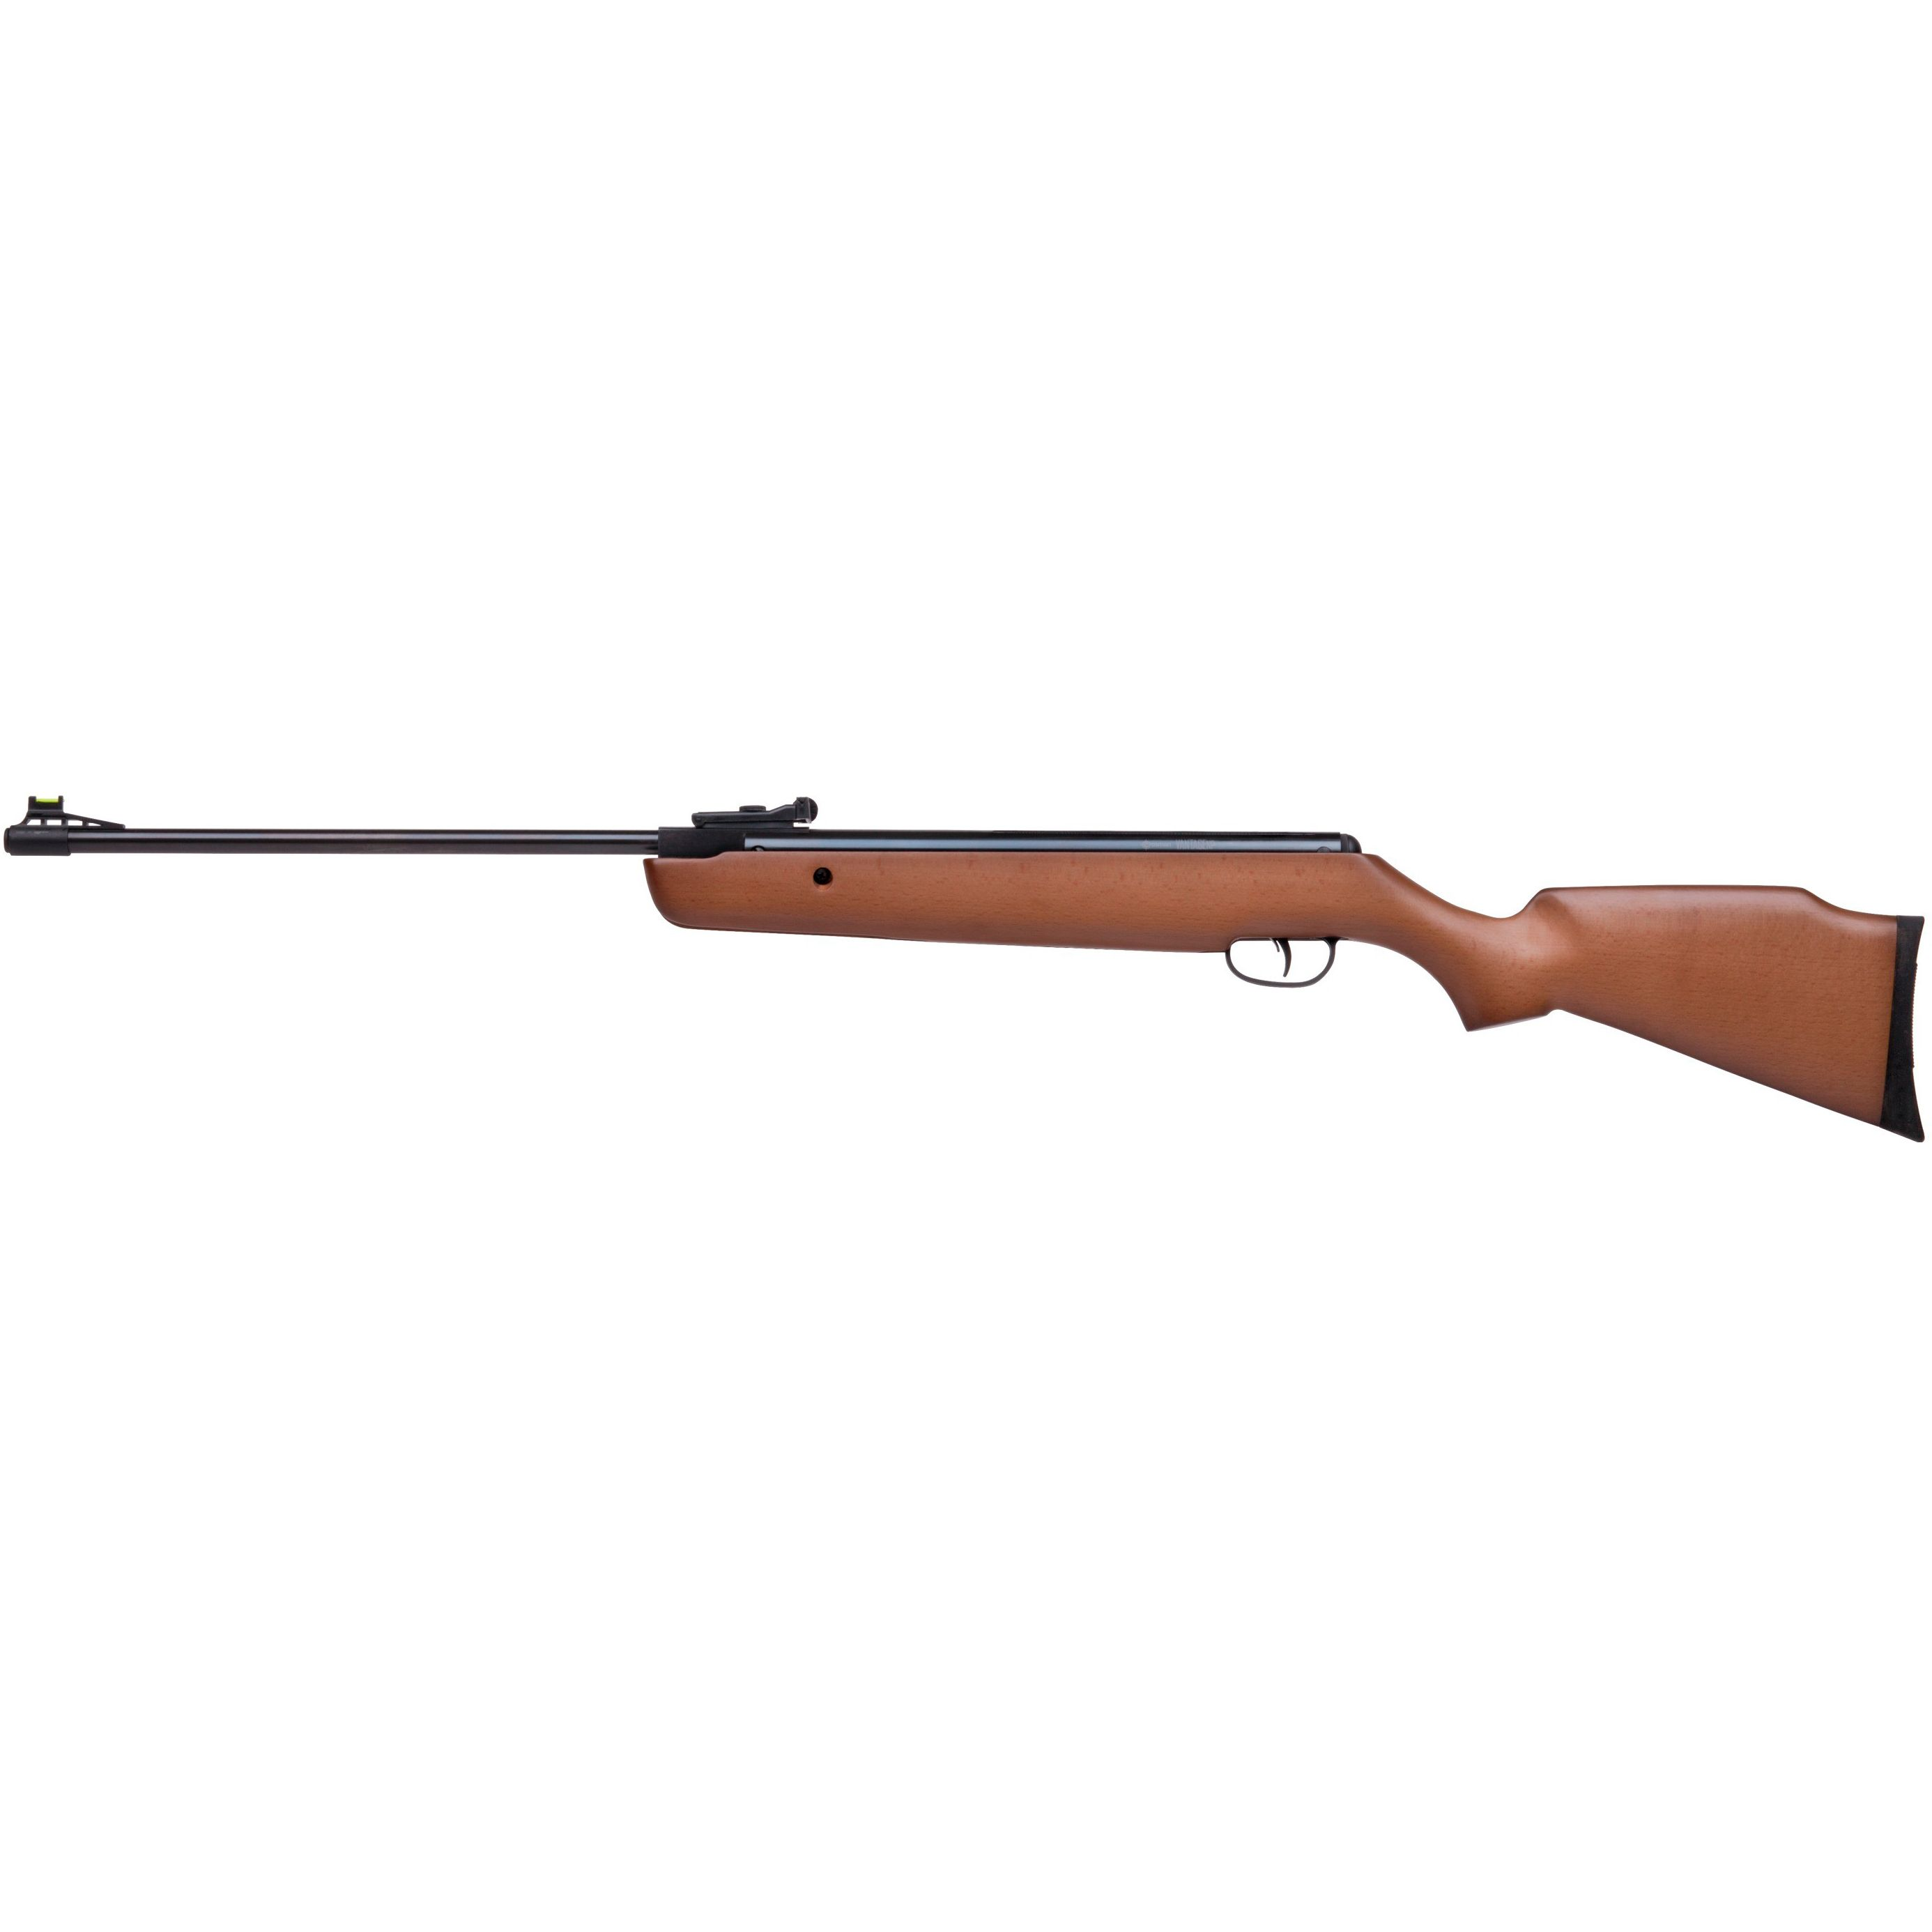 AIRGUN CROSMAN VANTAGE NP CALIBER 4.5MM